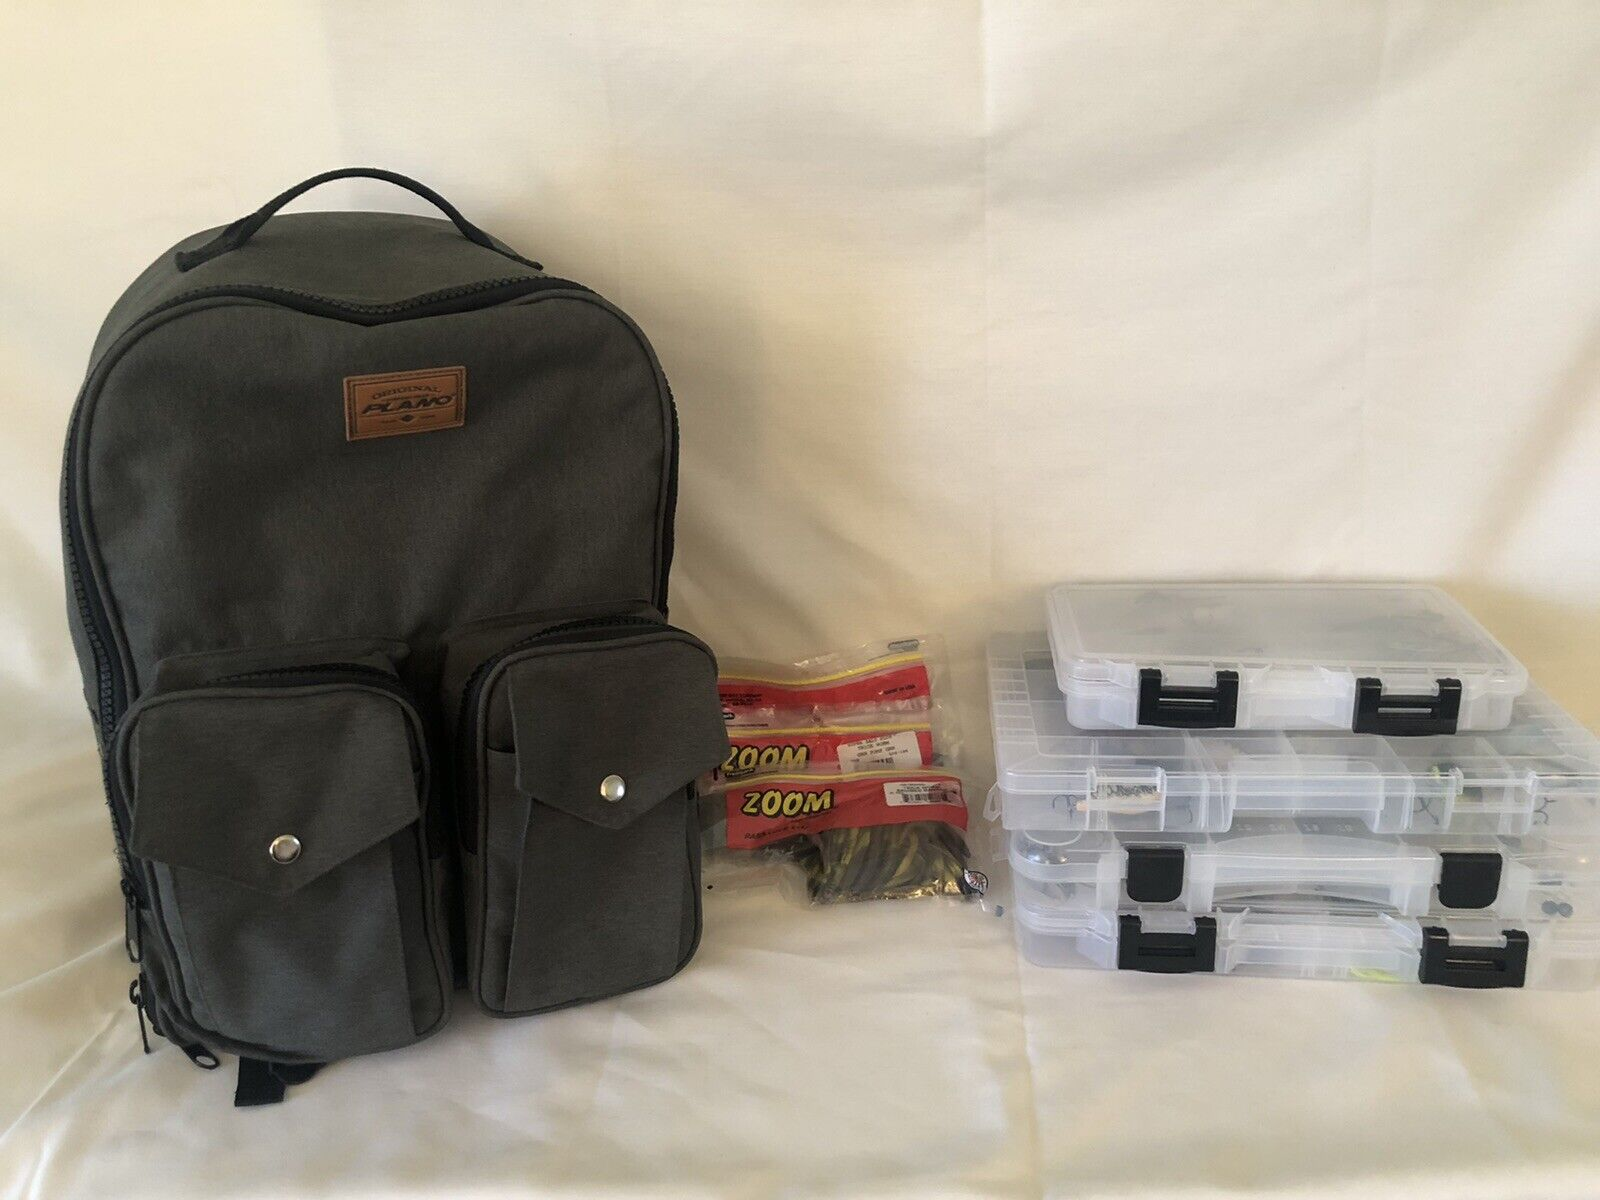 Plano Tackle Backpack Loaded with Fishing Lures and More